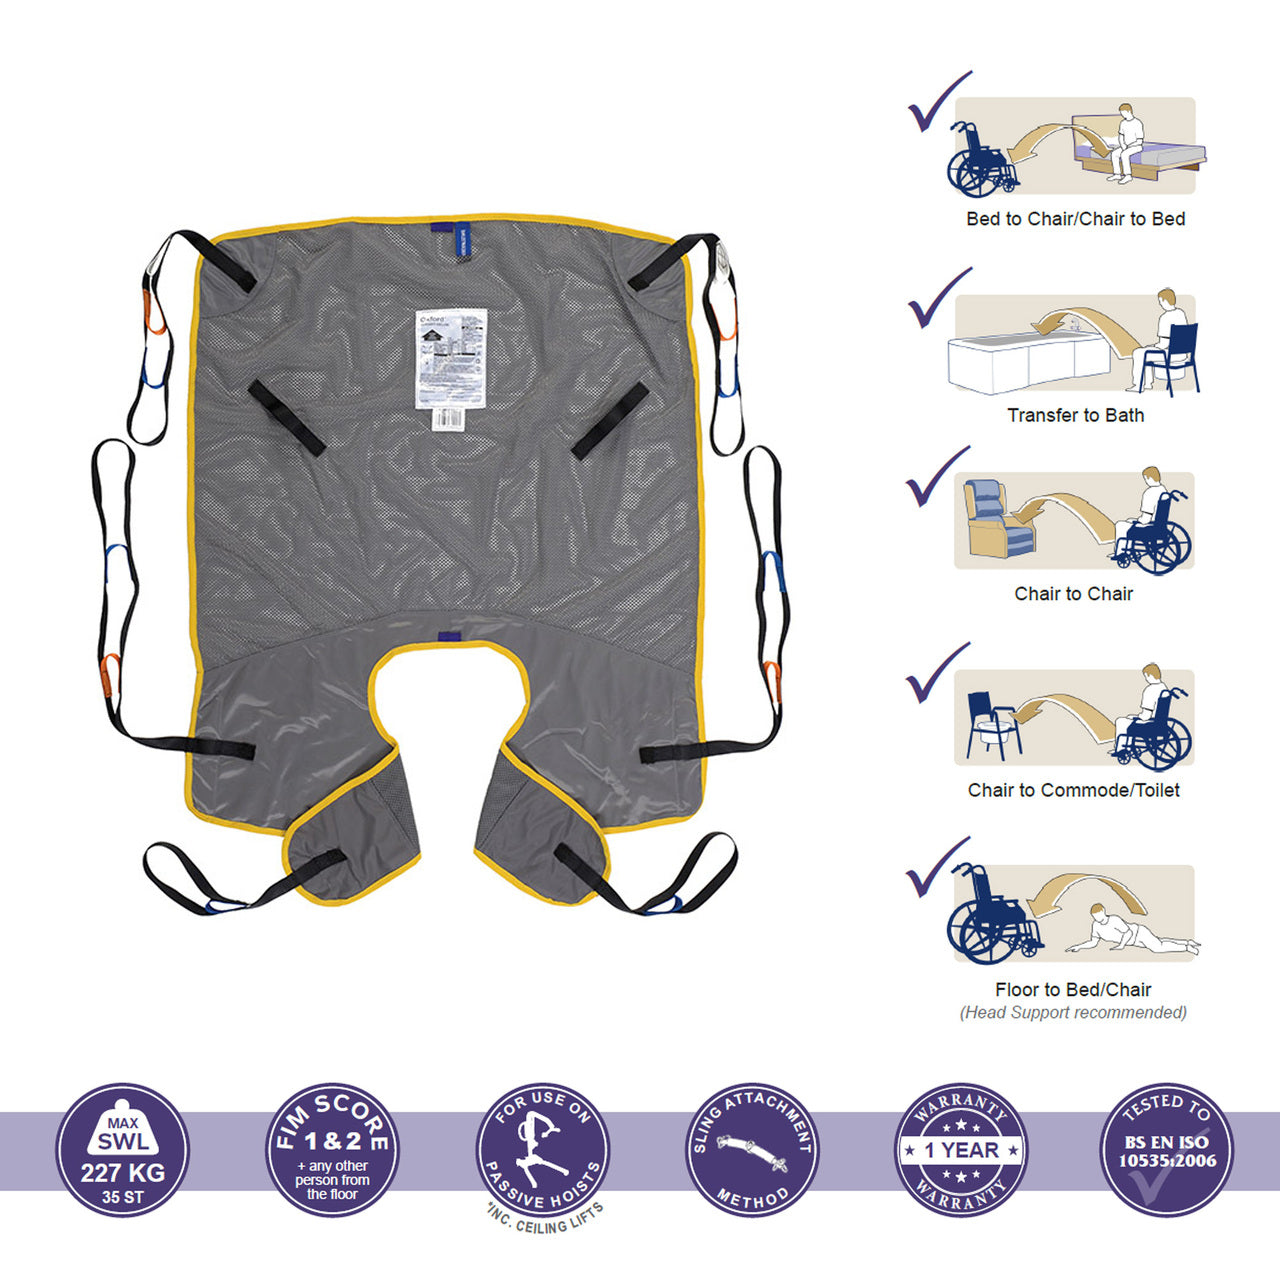 Oxford Quickfit Deluxe Sling